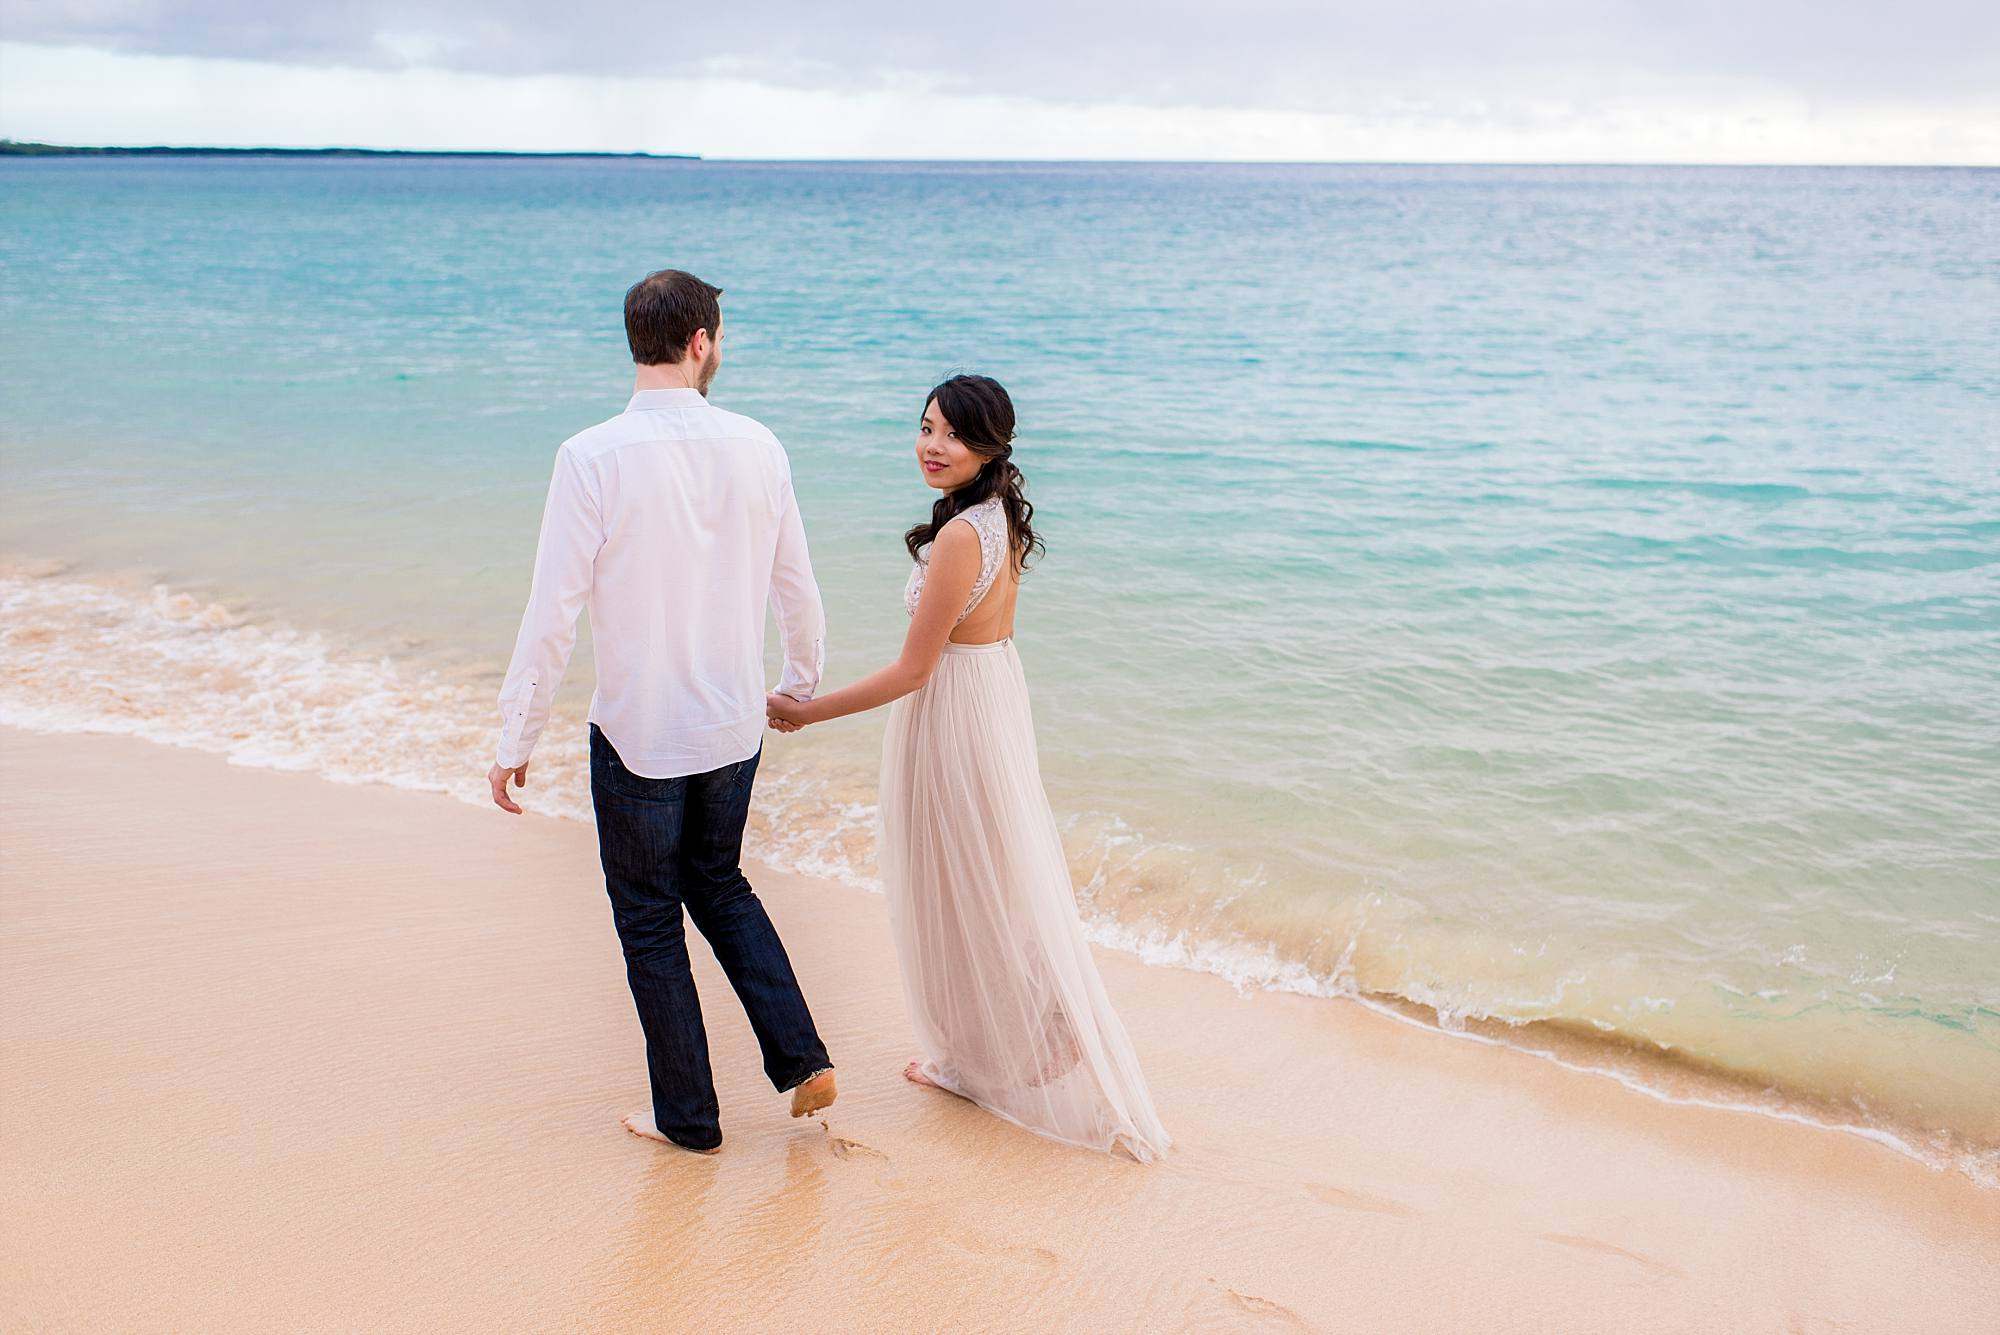 blue ocean and newly engaged couple walking hand in hand on the sand away from camera